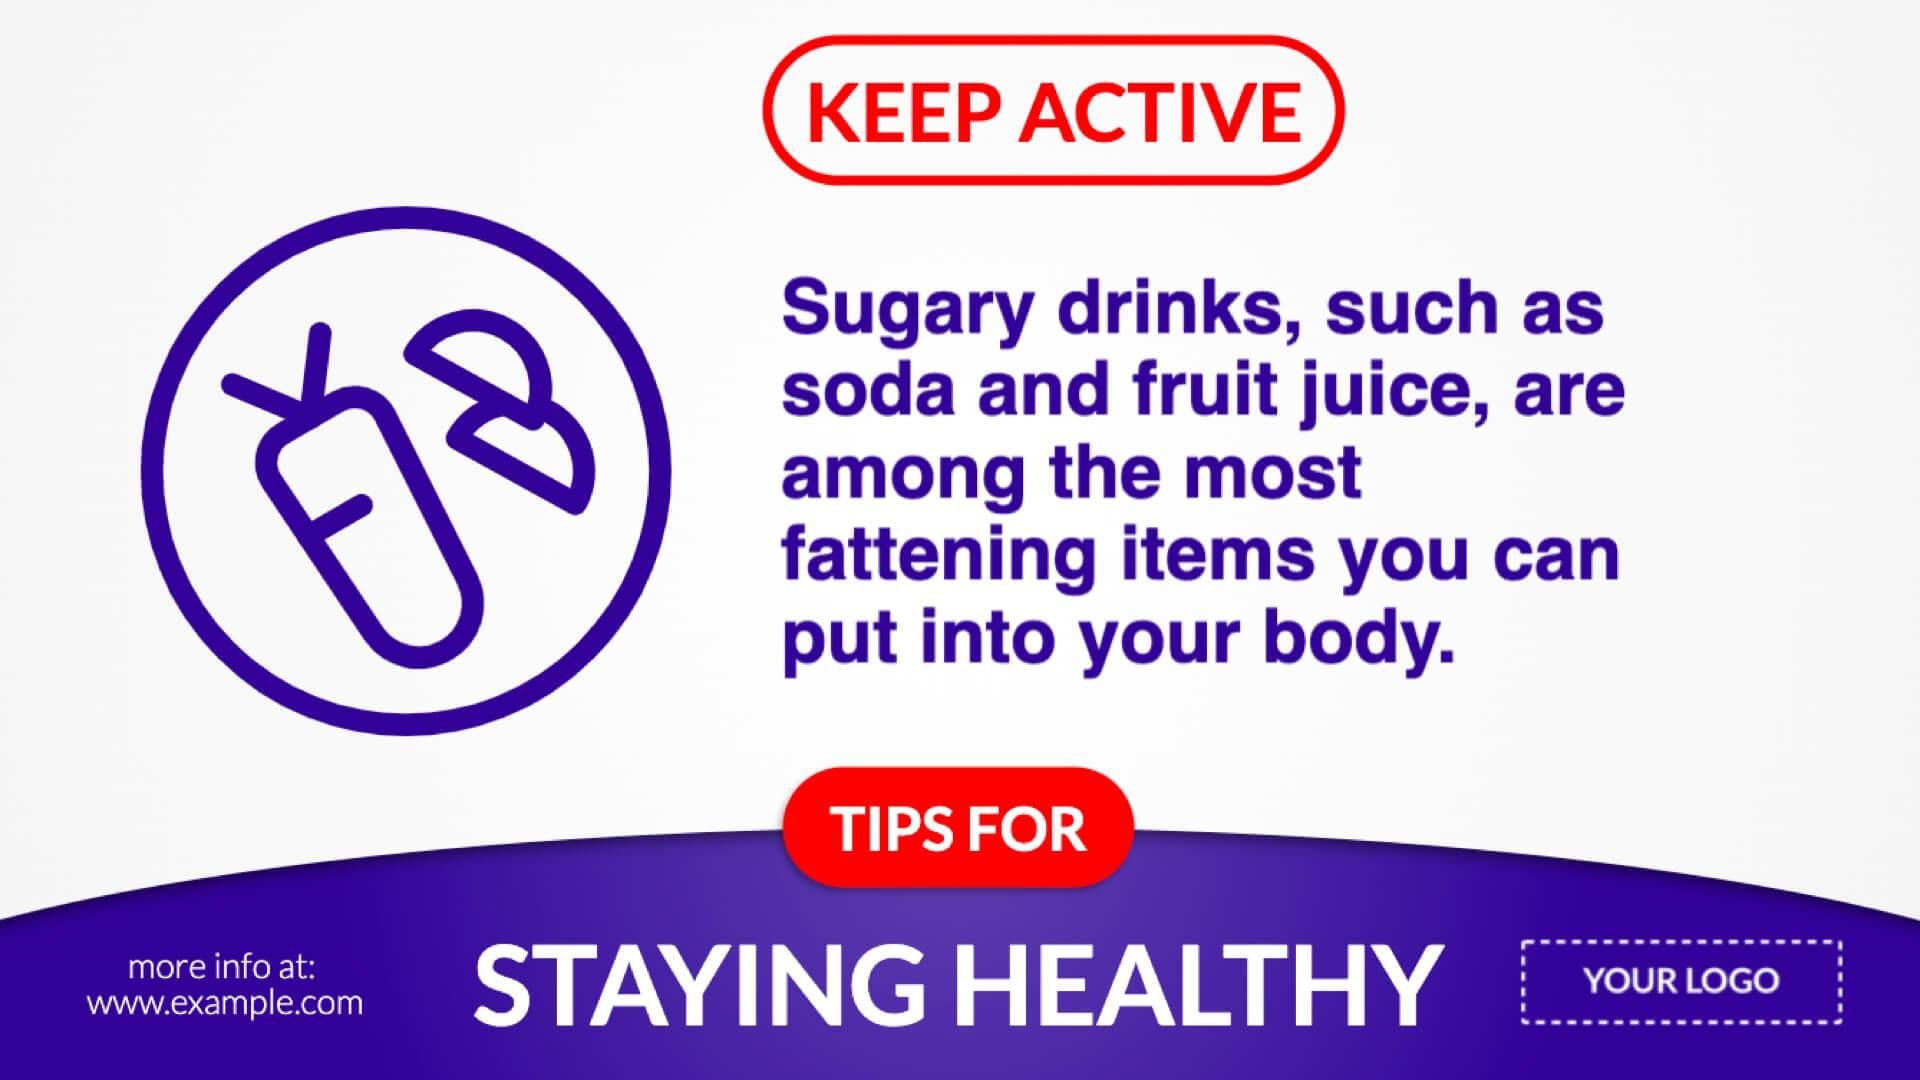 Auto Updating Tips For Staying Healthy Digital Signage Template